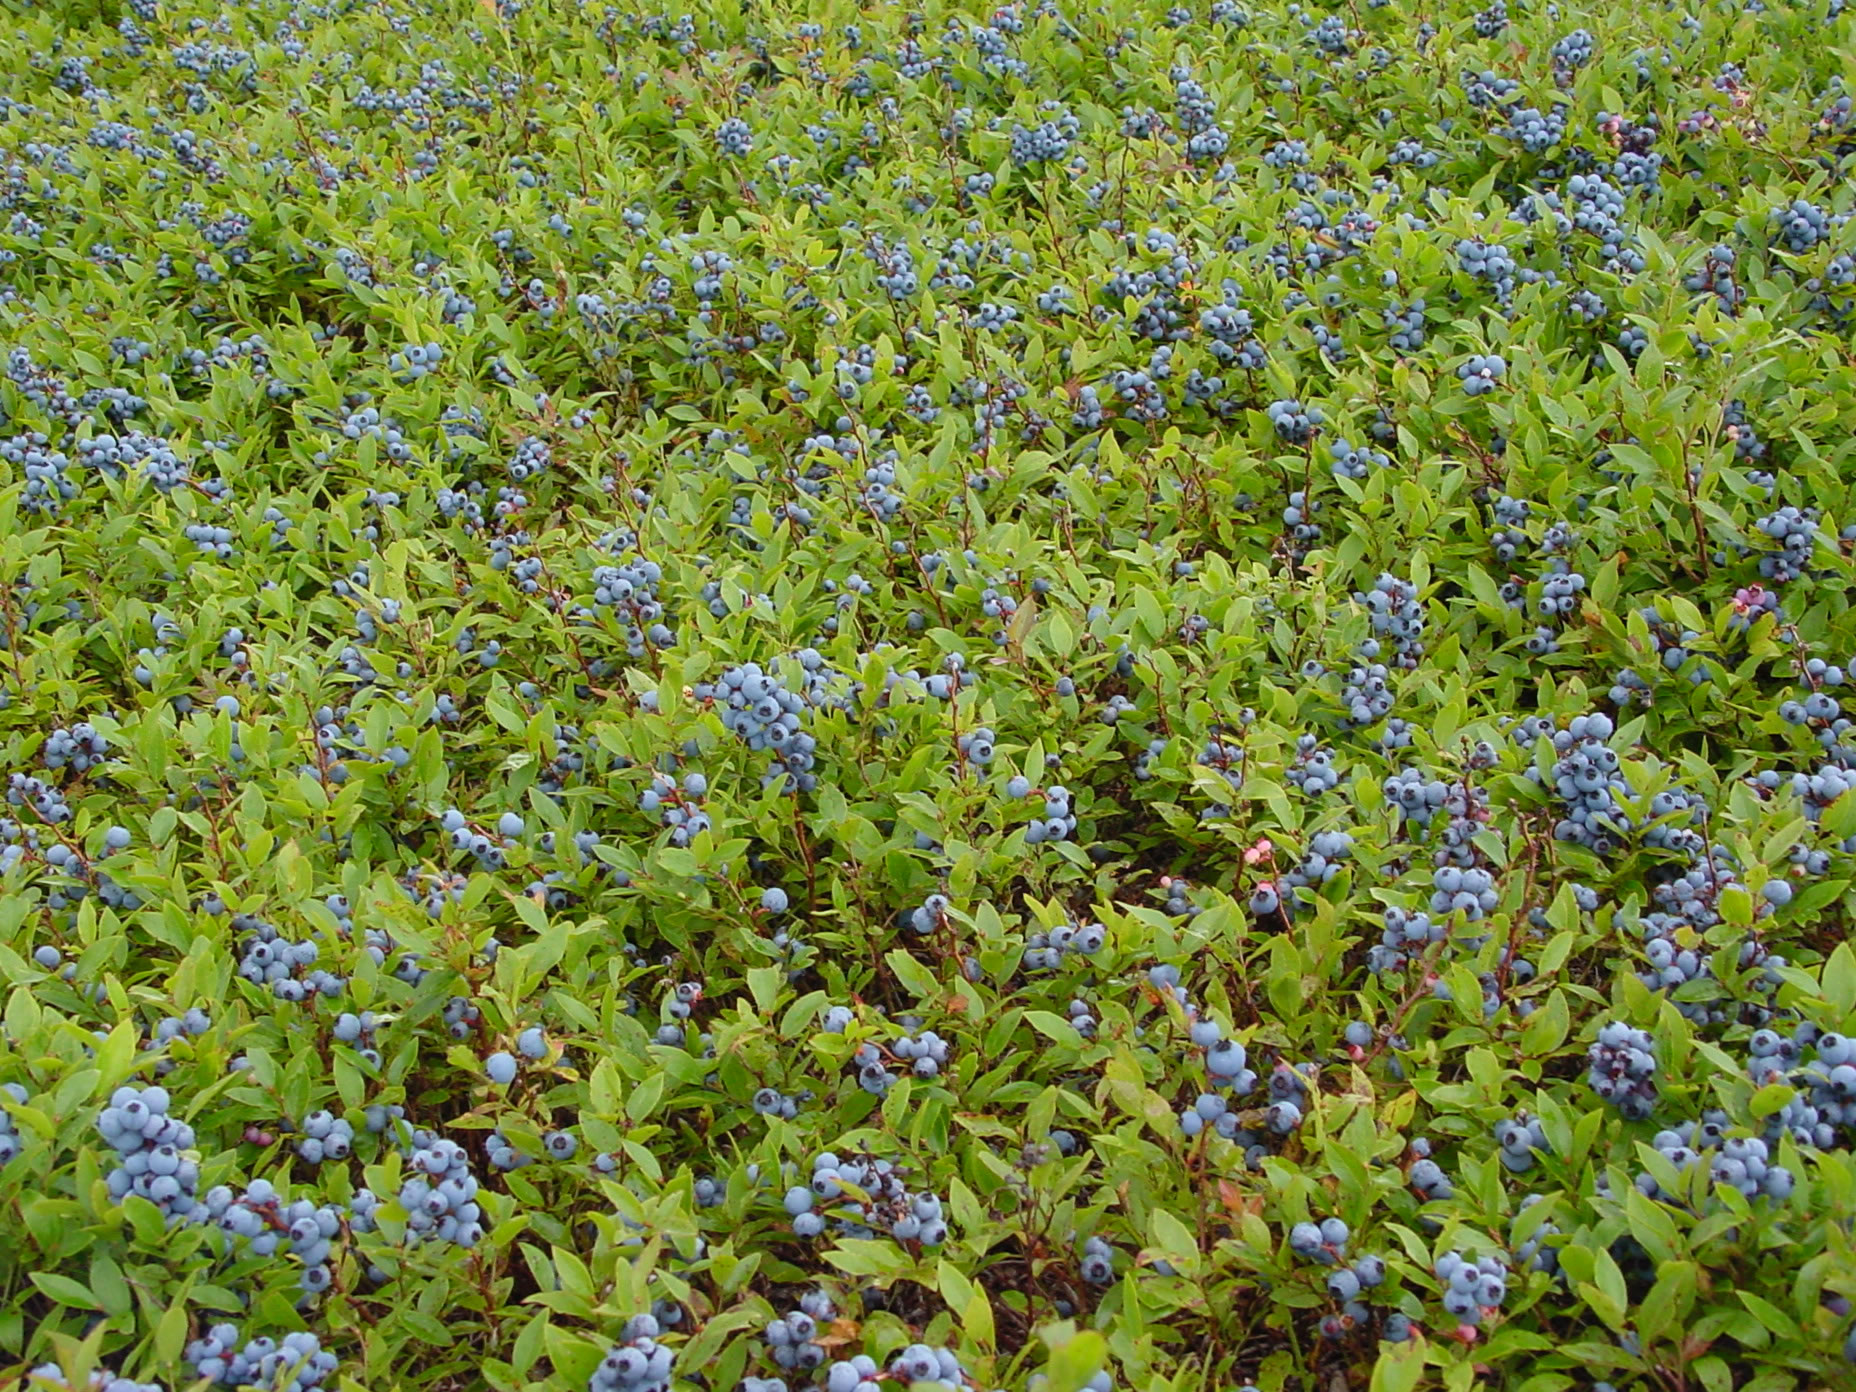 Wild Blueberries Images